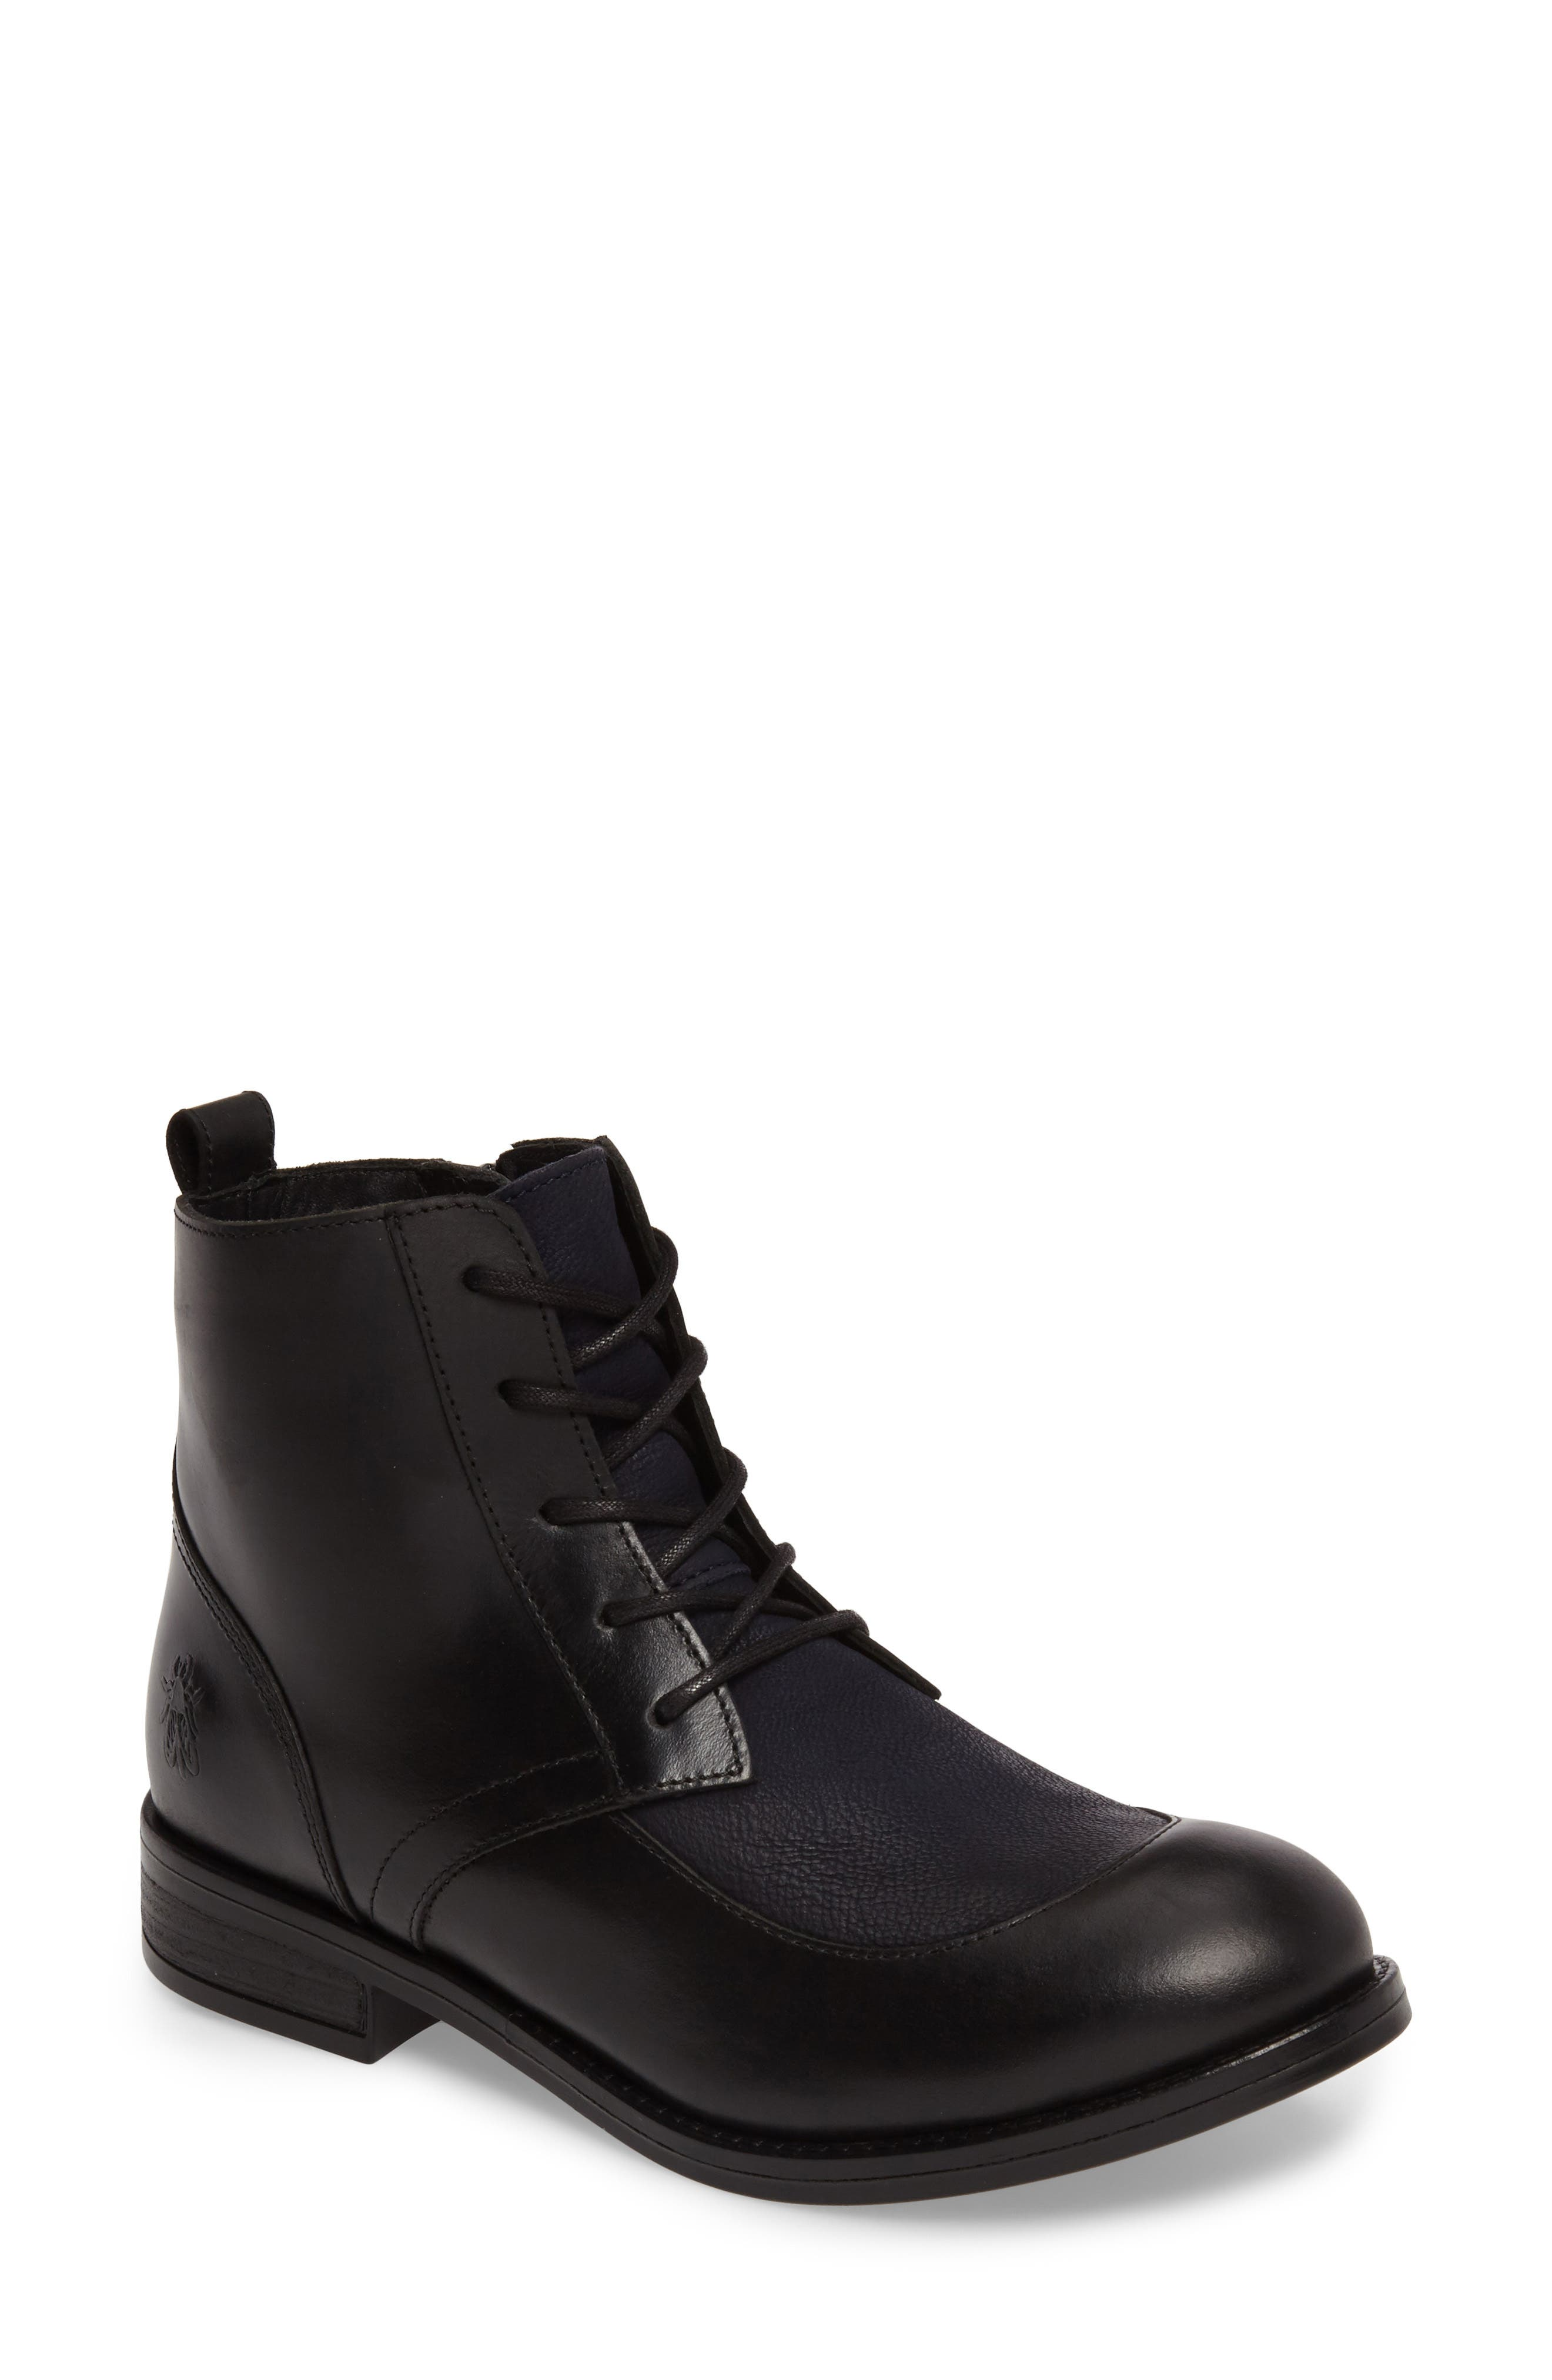 Arty Boot,                             Main thumbnail 1, color,                             Black/ Ocean Leather